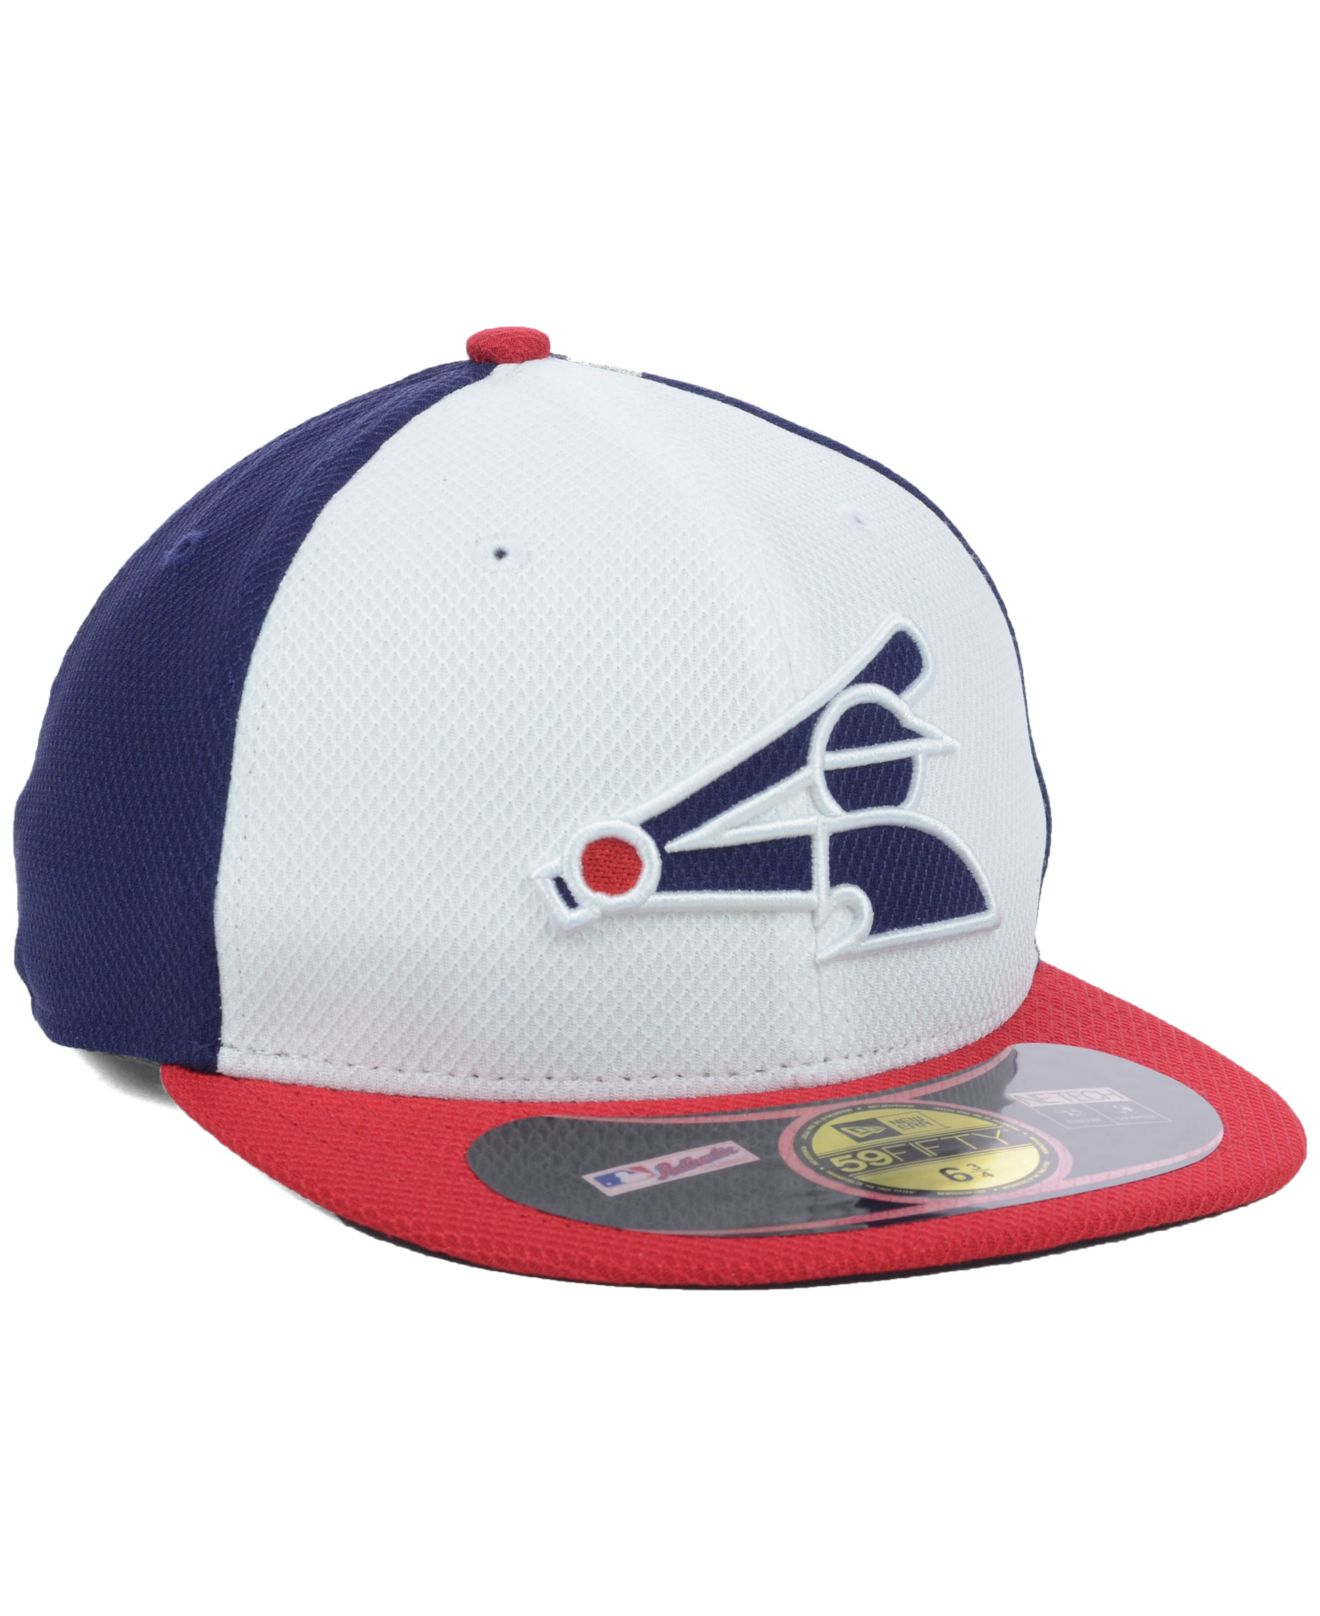 save off 1367b da77e ... sweden lyst ktz kids chicago white sox mlb diamond era 59fifty cap in  blue for men